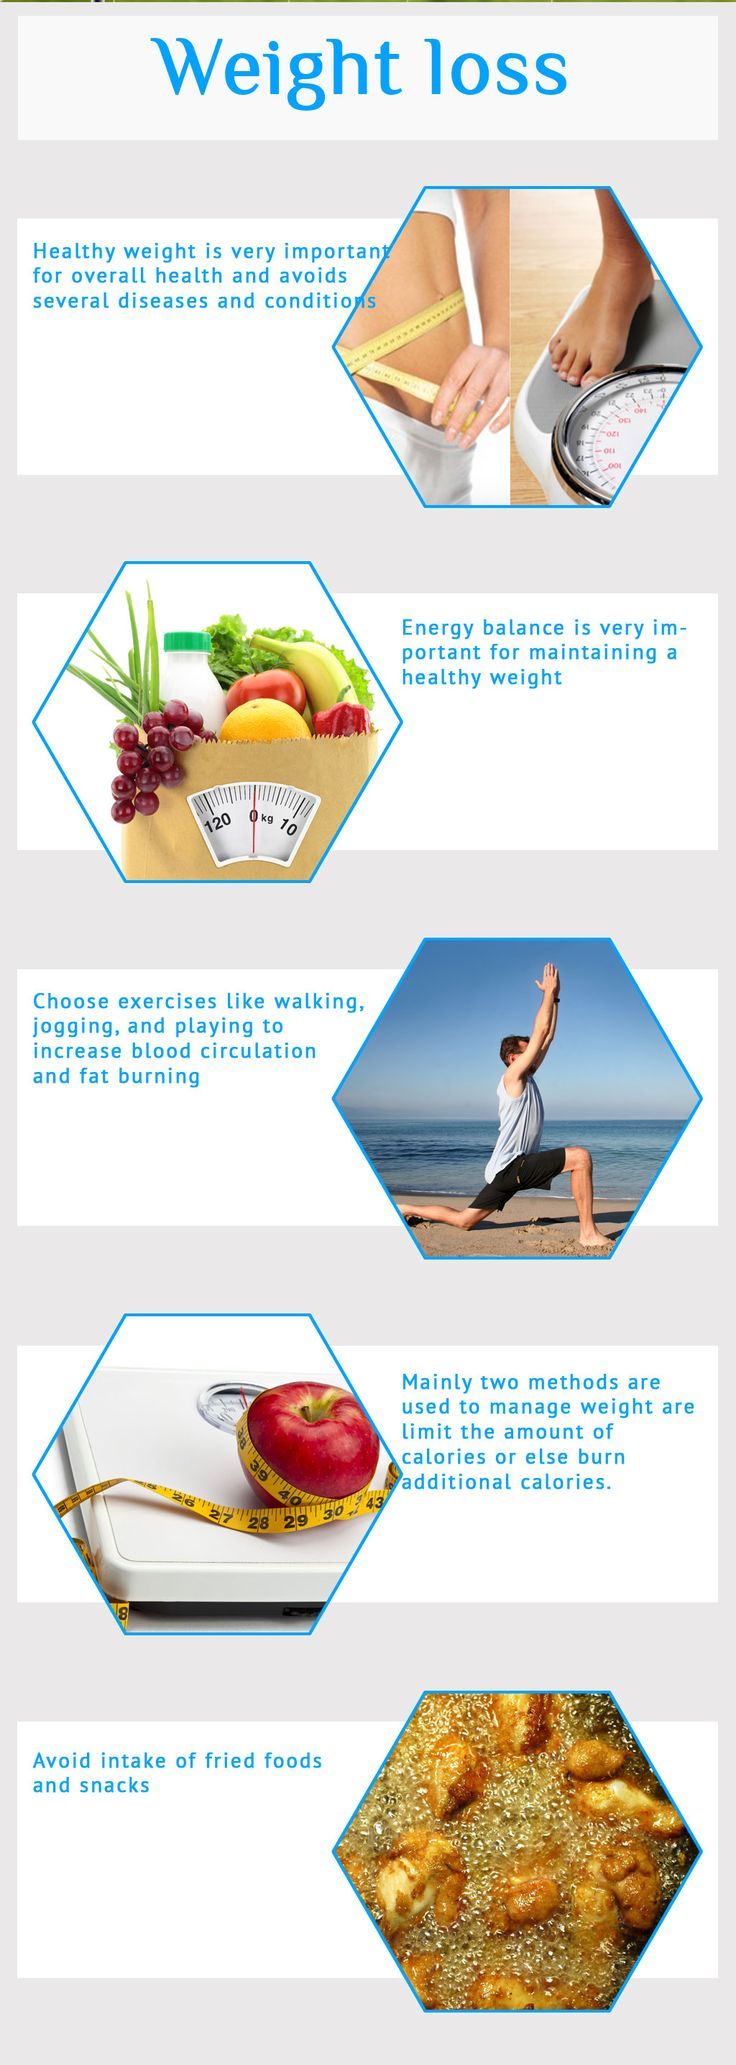 Currently fatness becomes more common health issue because of changing lifestyle working model and bad eating habits. Simultaneously obesity brings numerous health issues related to heart, joint and absorption. Overweight also makes a person feel uncomfortable, therefore, each and every person desires to lose weight and look good.